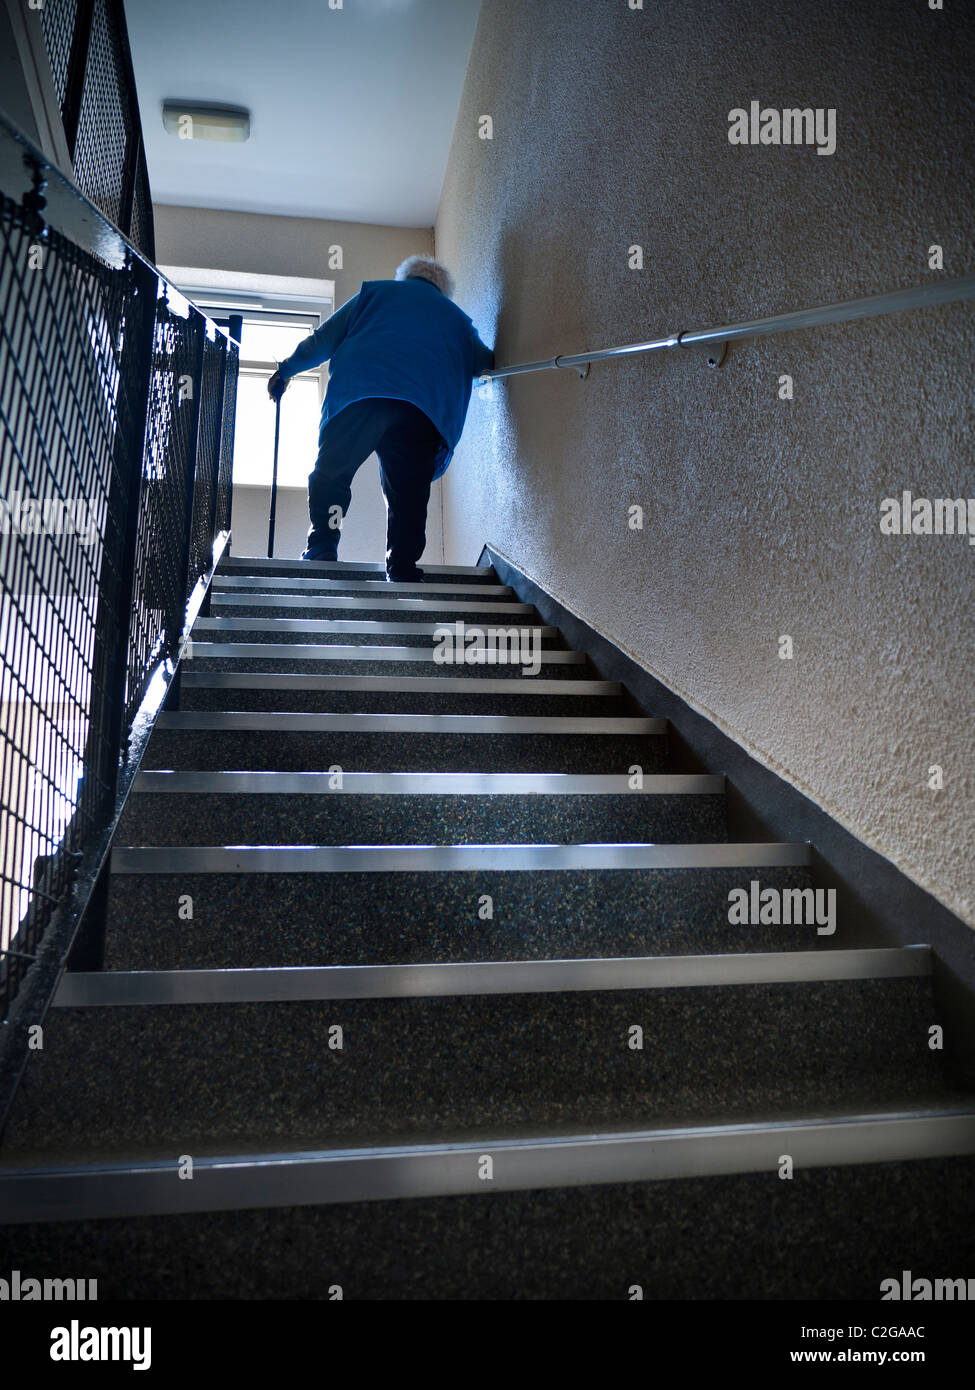 Independent elderly senior pensioner lady at 97 years climbing steep flight of stairs aided only by her walking - Stock Image